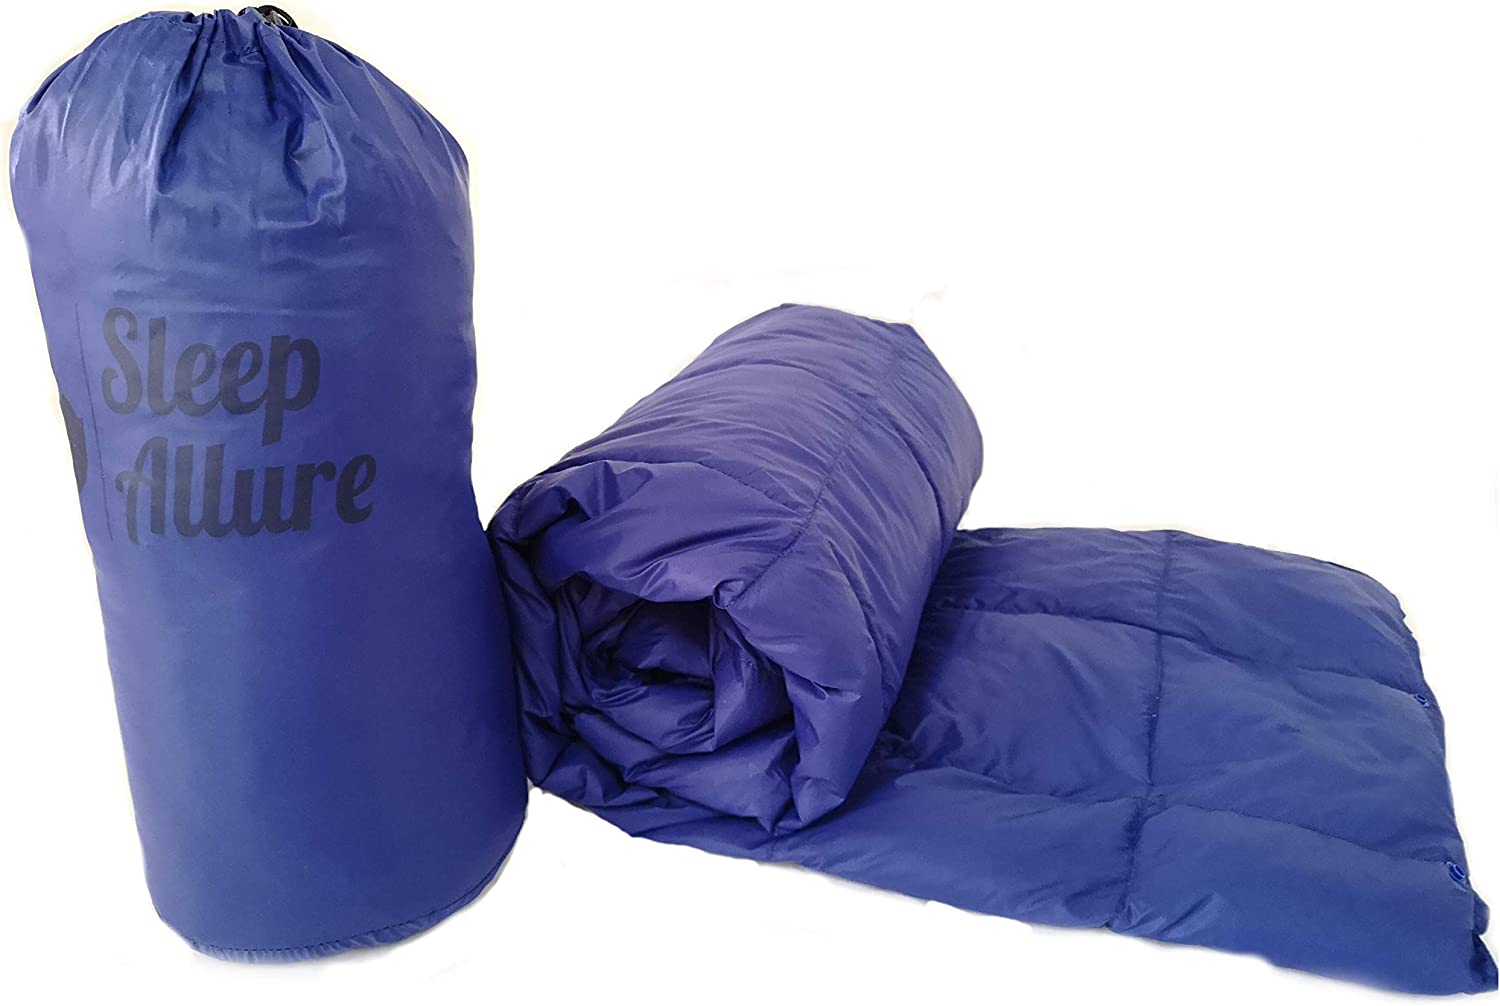 Sleep Allure Camping Blanket Indoor Outdoor Puffy 600 Fill Power Duck Down Throw with Buttons for Camping Hiking blueee